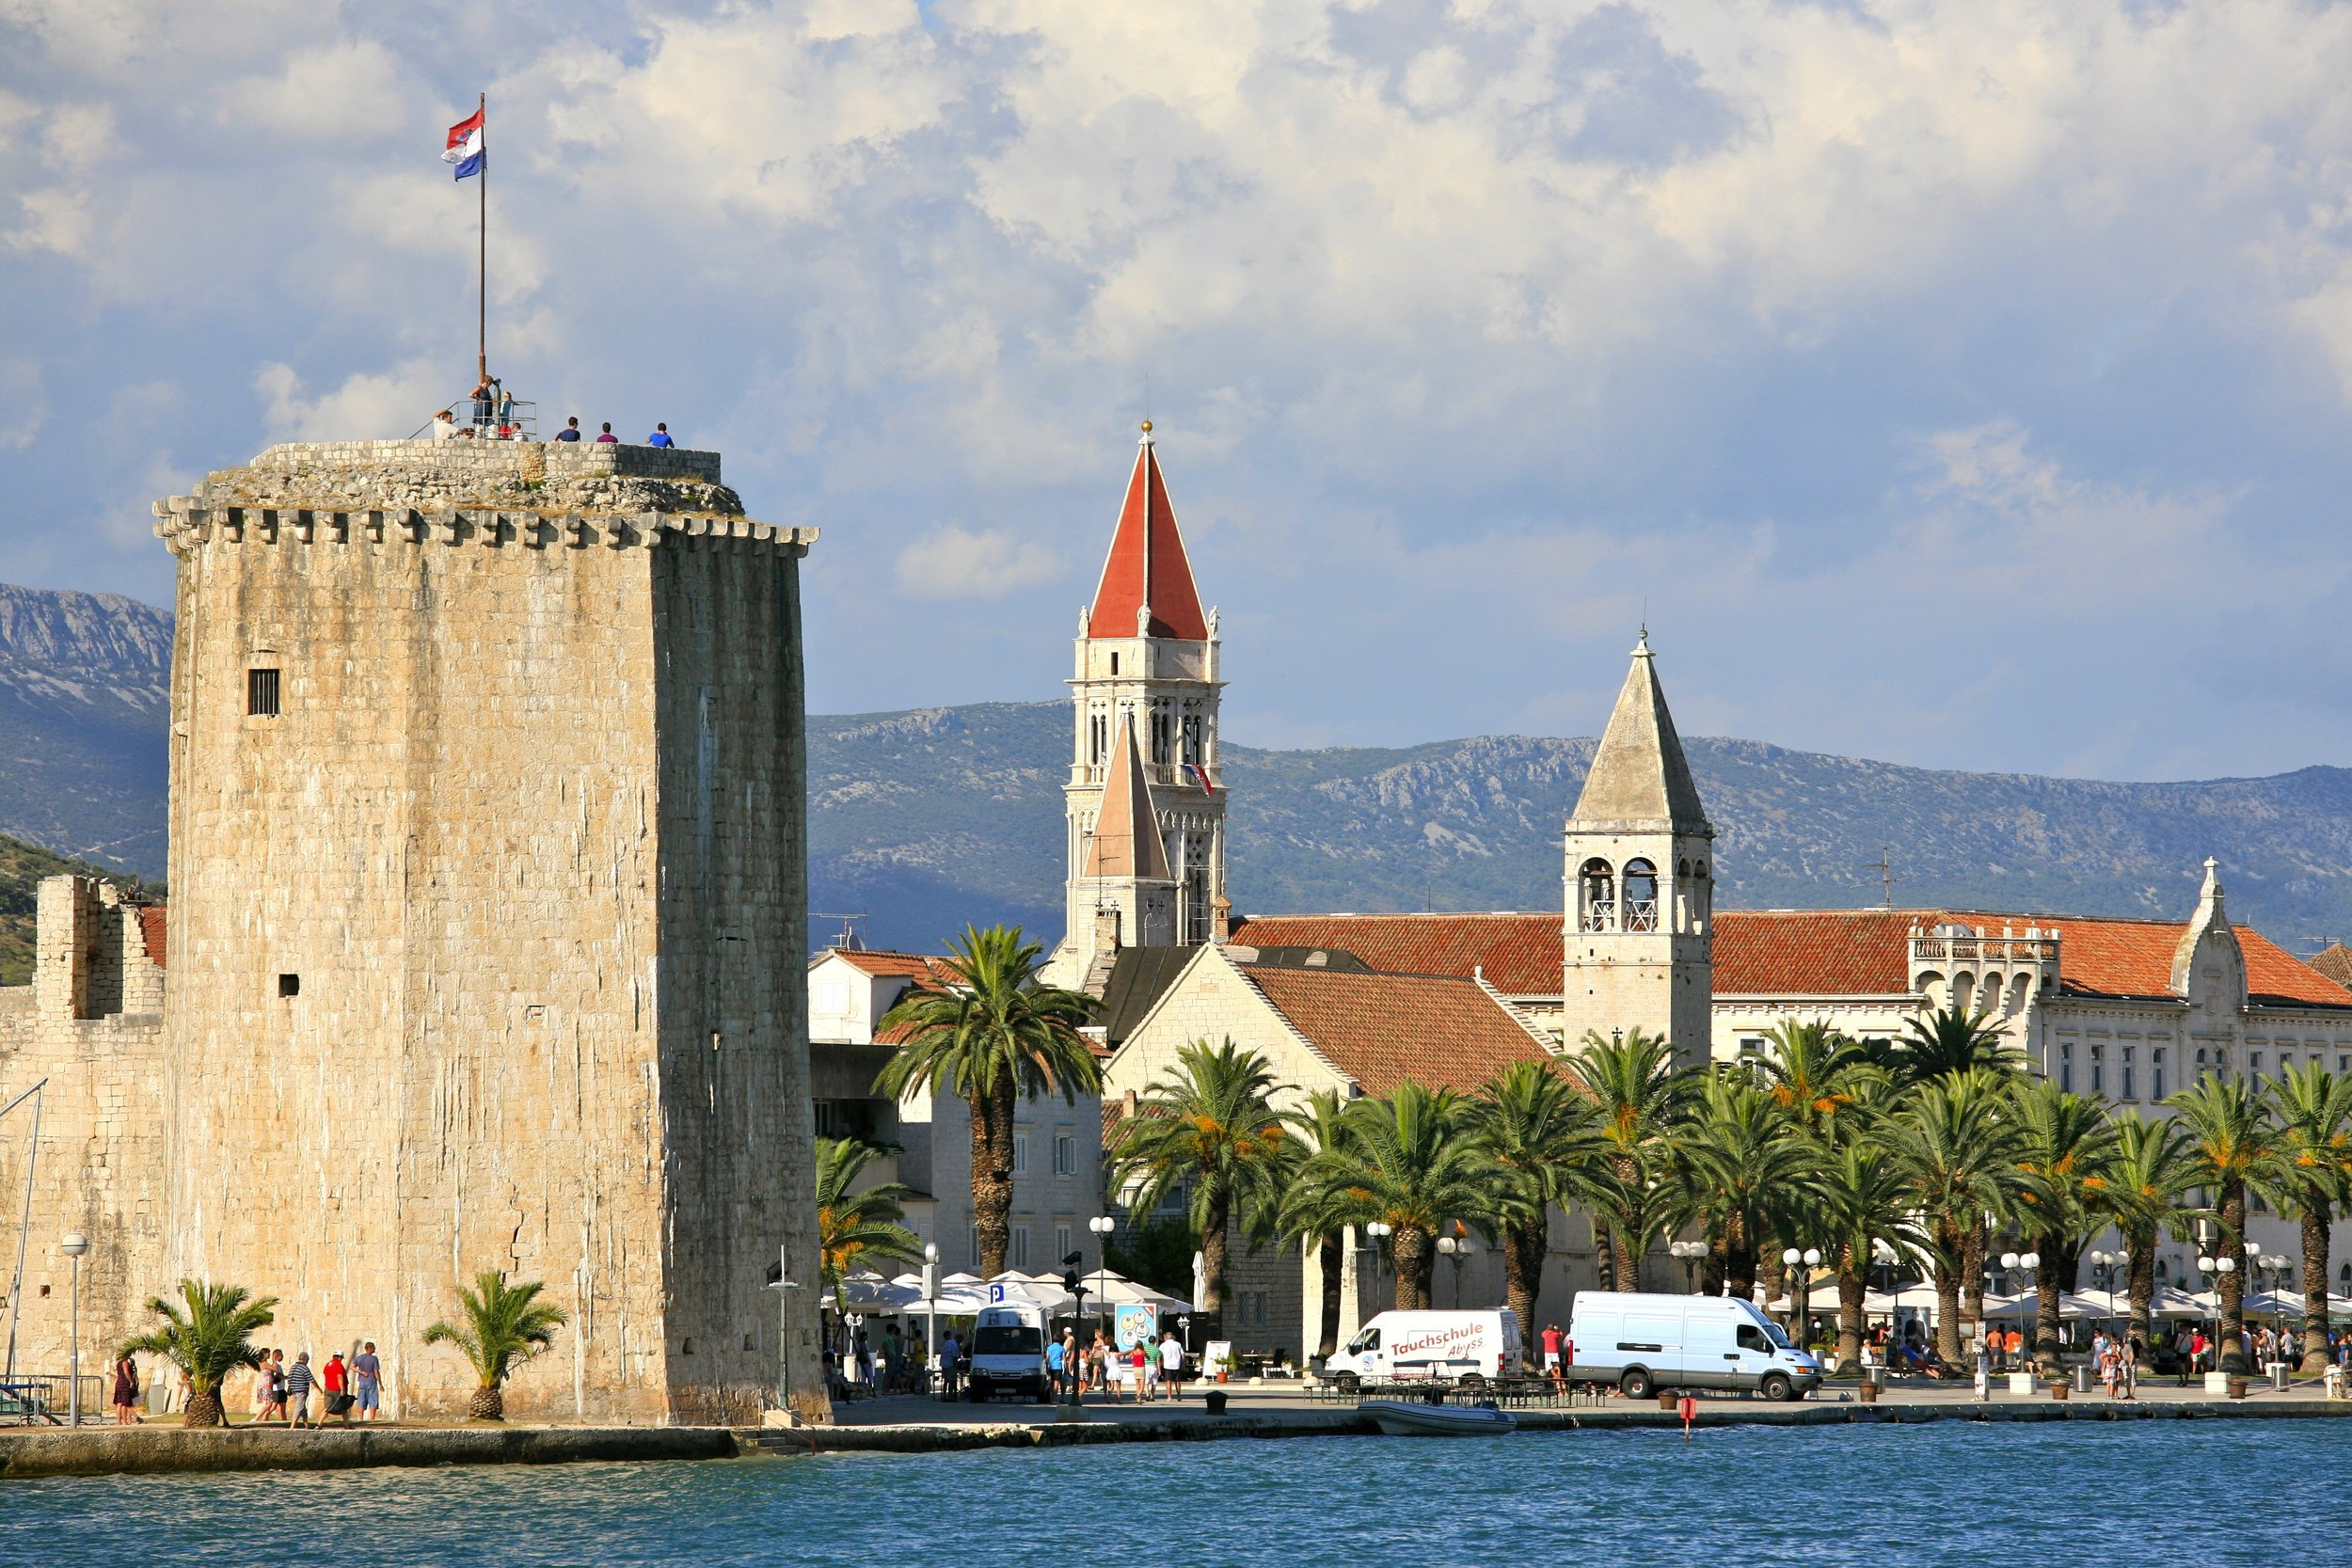 City_of_Trogir_and_the_Tower_of_the_Kamerlengo_Castle_(5975489212).jpg